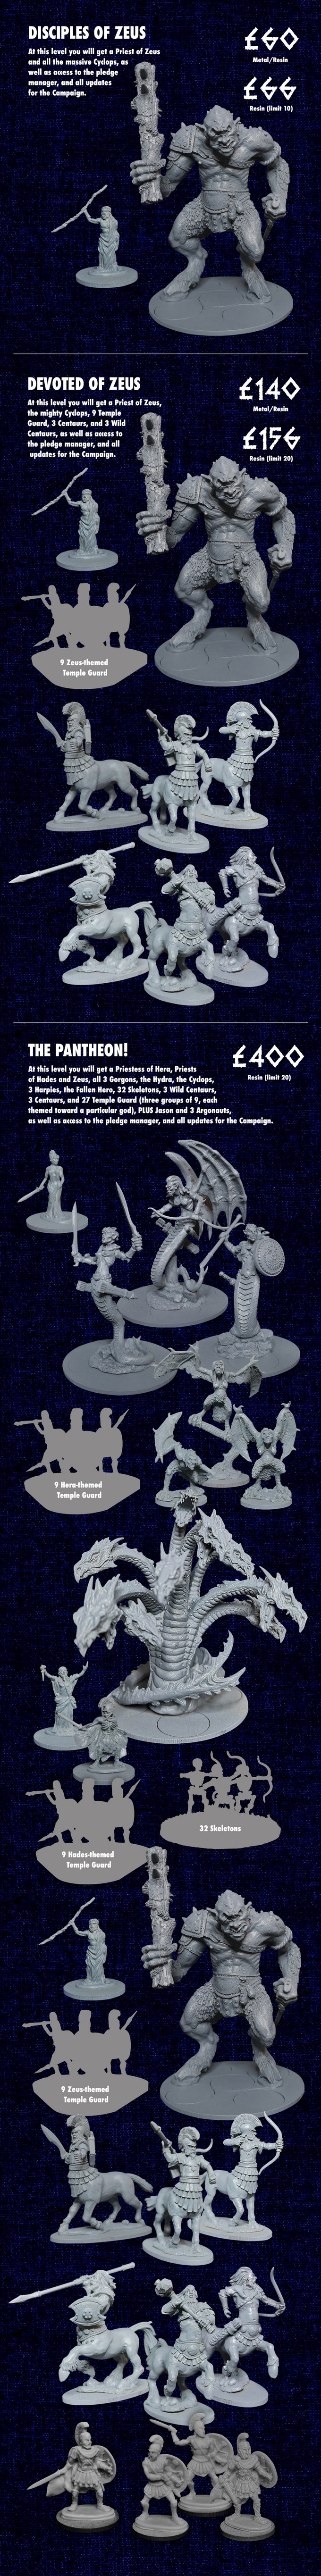 Monsters & More - Footsore Miniatures